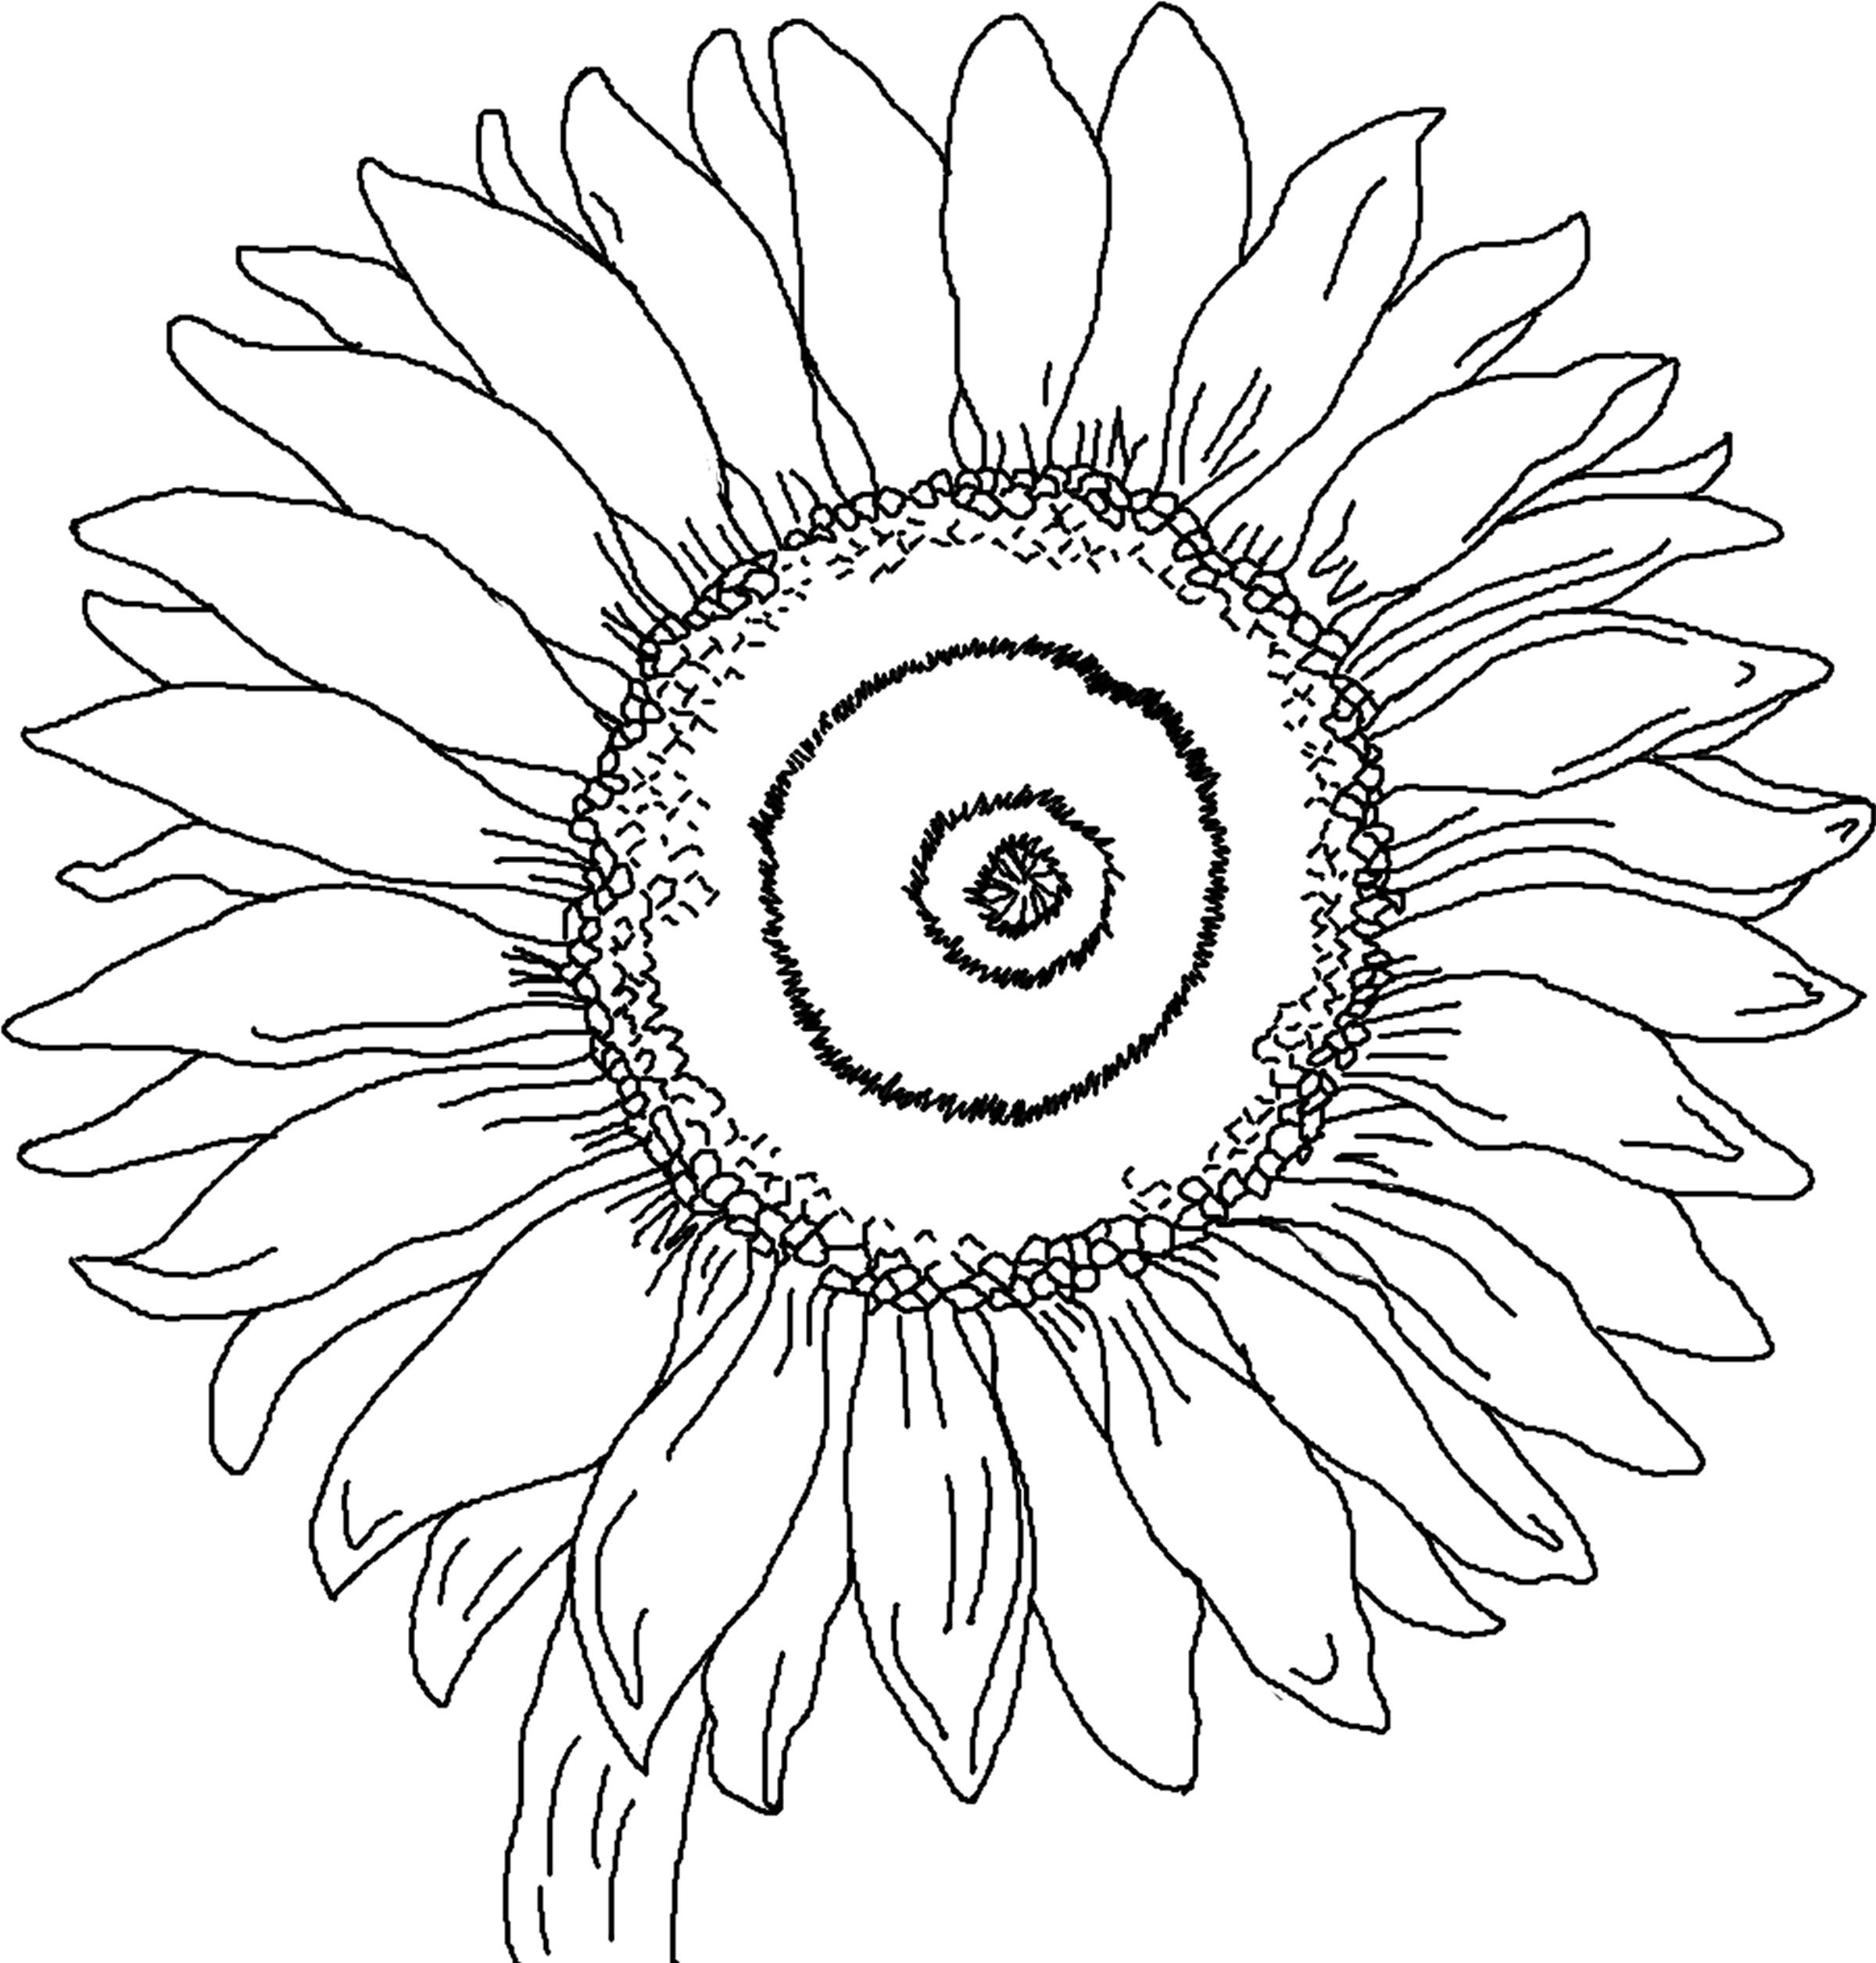 free printable coloring pages of flowers daisy flower outline free download on clipartmag of pages flowers coloring printable free